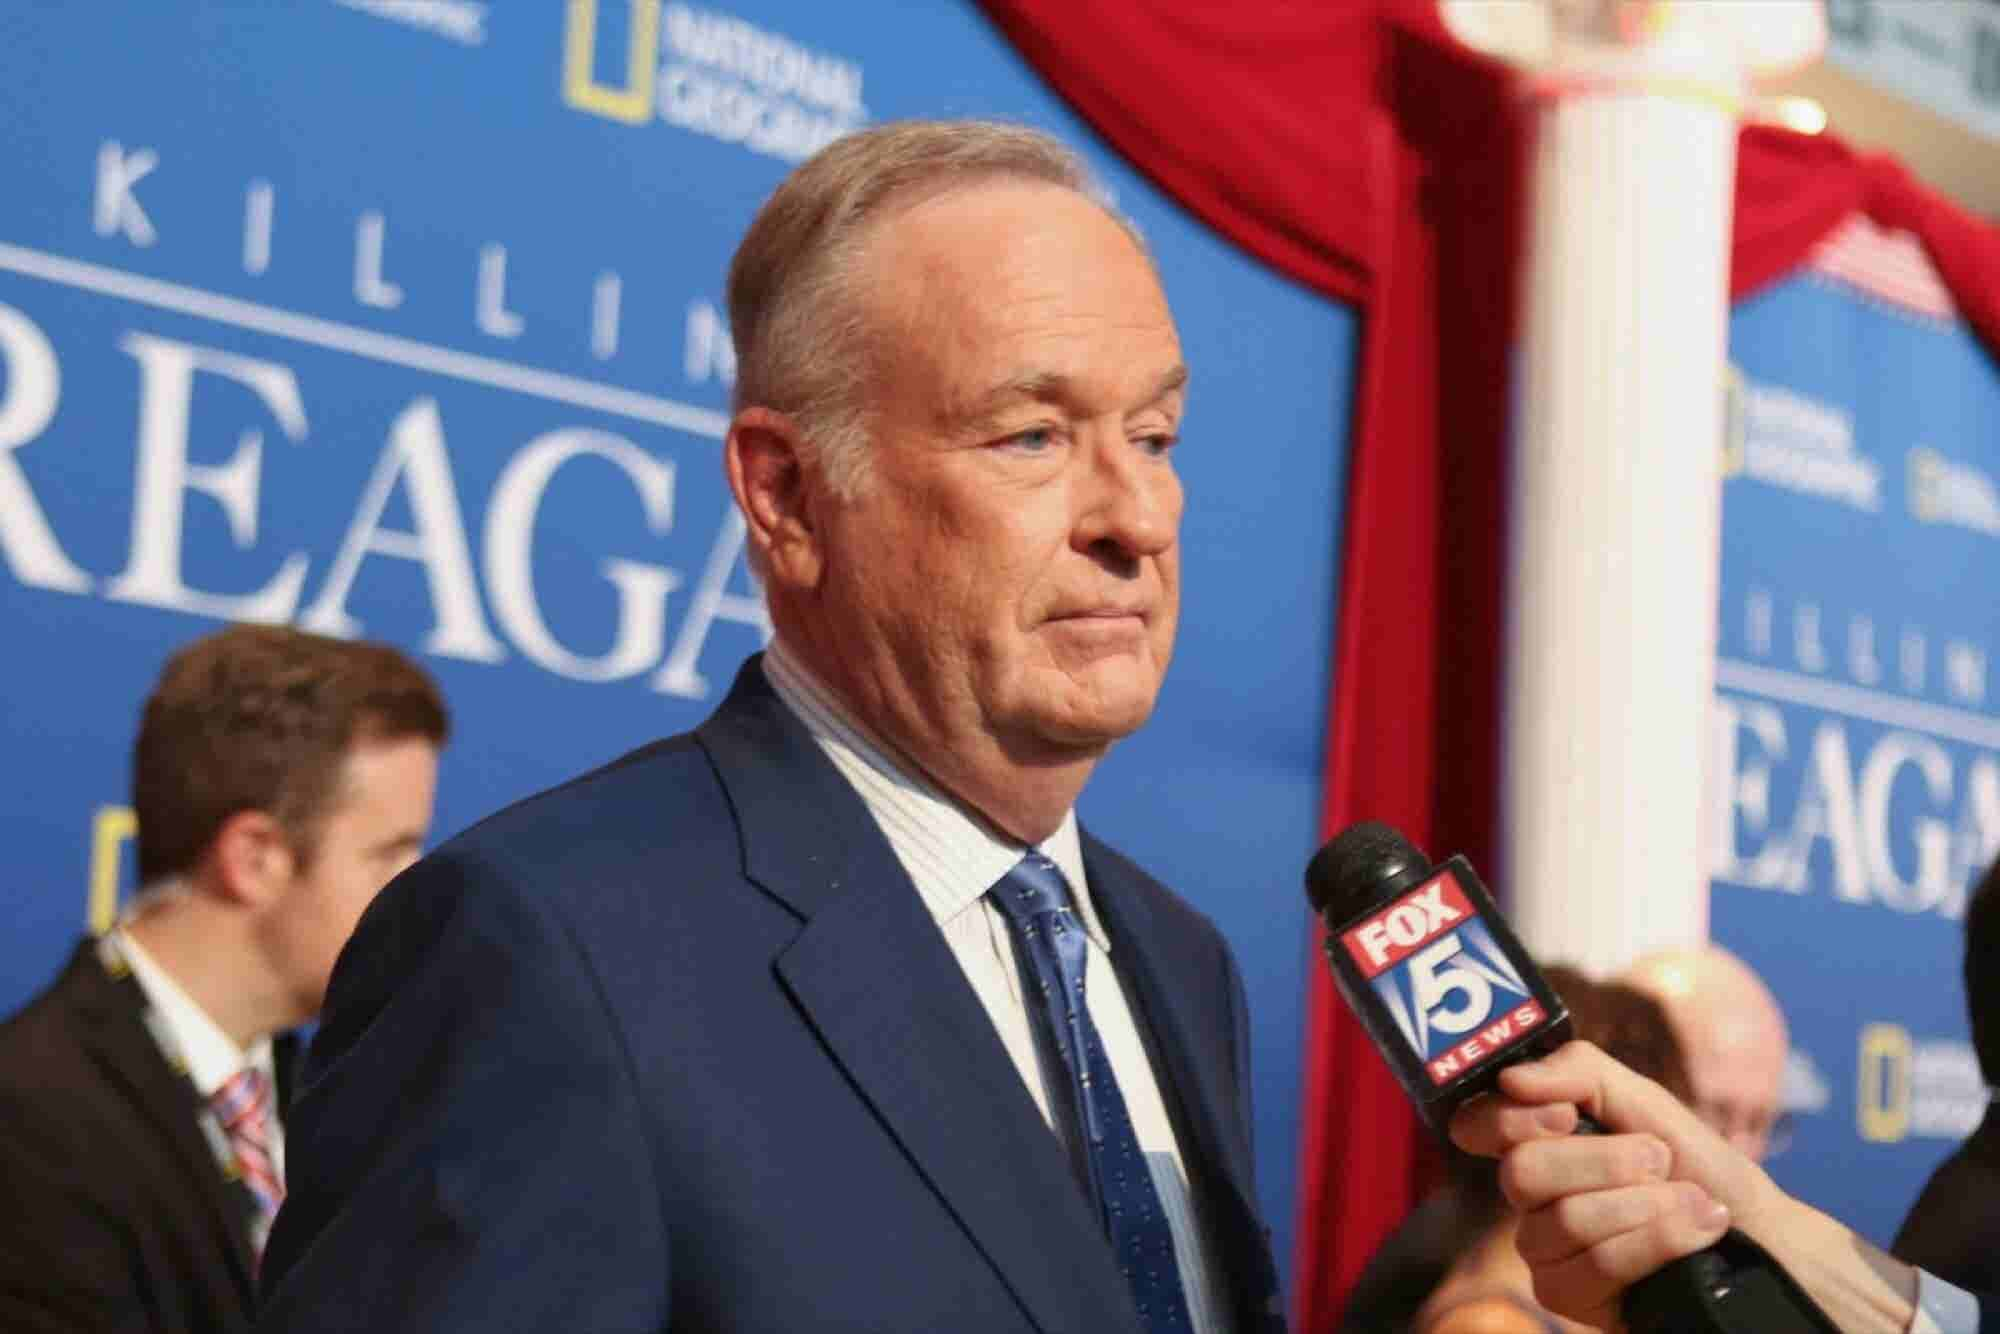 Killing Bill: The Demise of Bill O'Reilly at Fox News